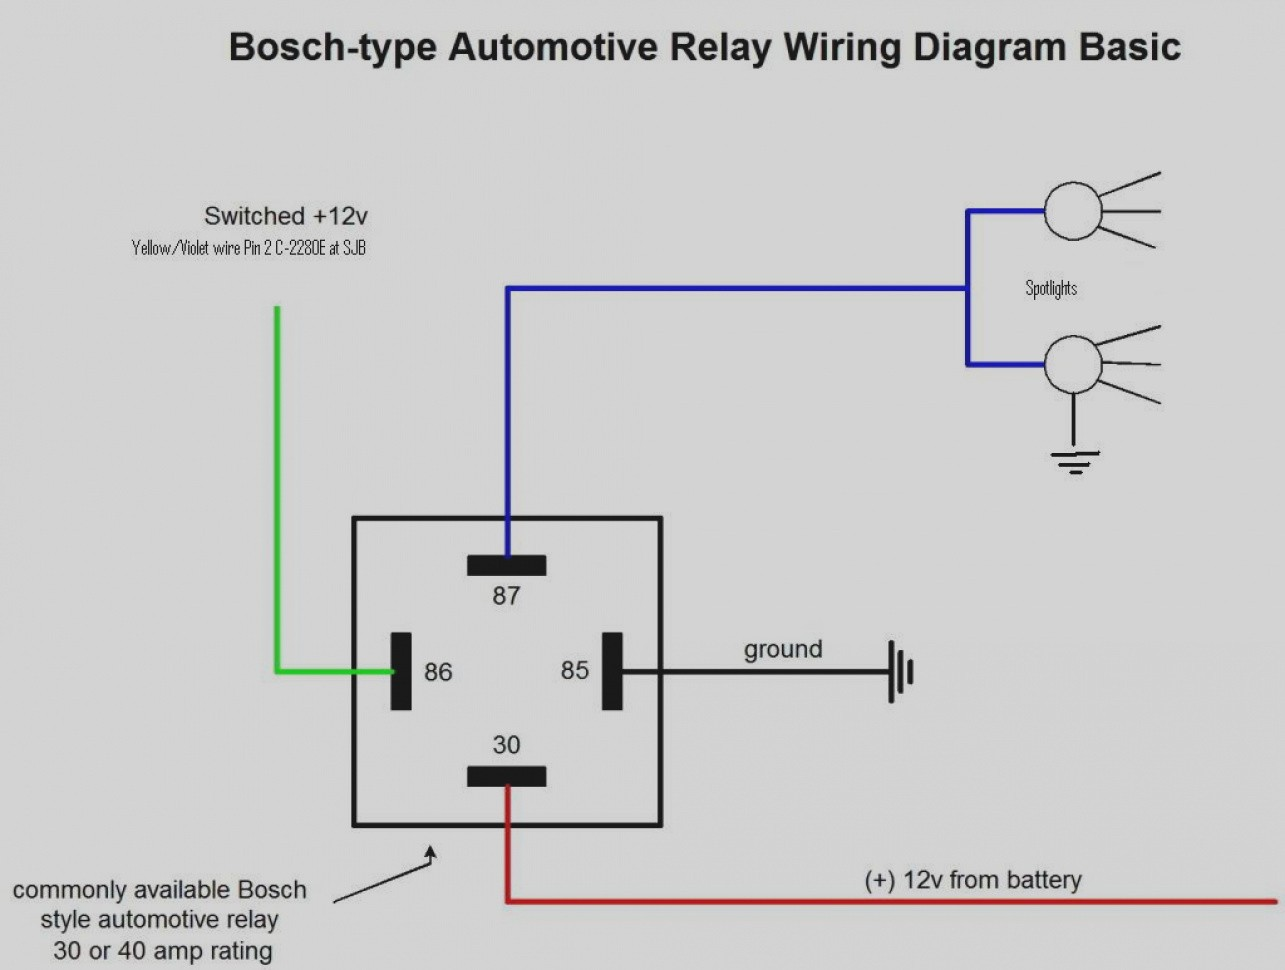 basic relay wiring diagram nk 9889  basic 12v relay wiring free diagram  basic 12v relay wiring free diagram